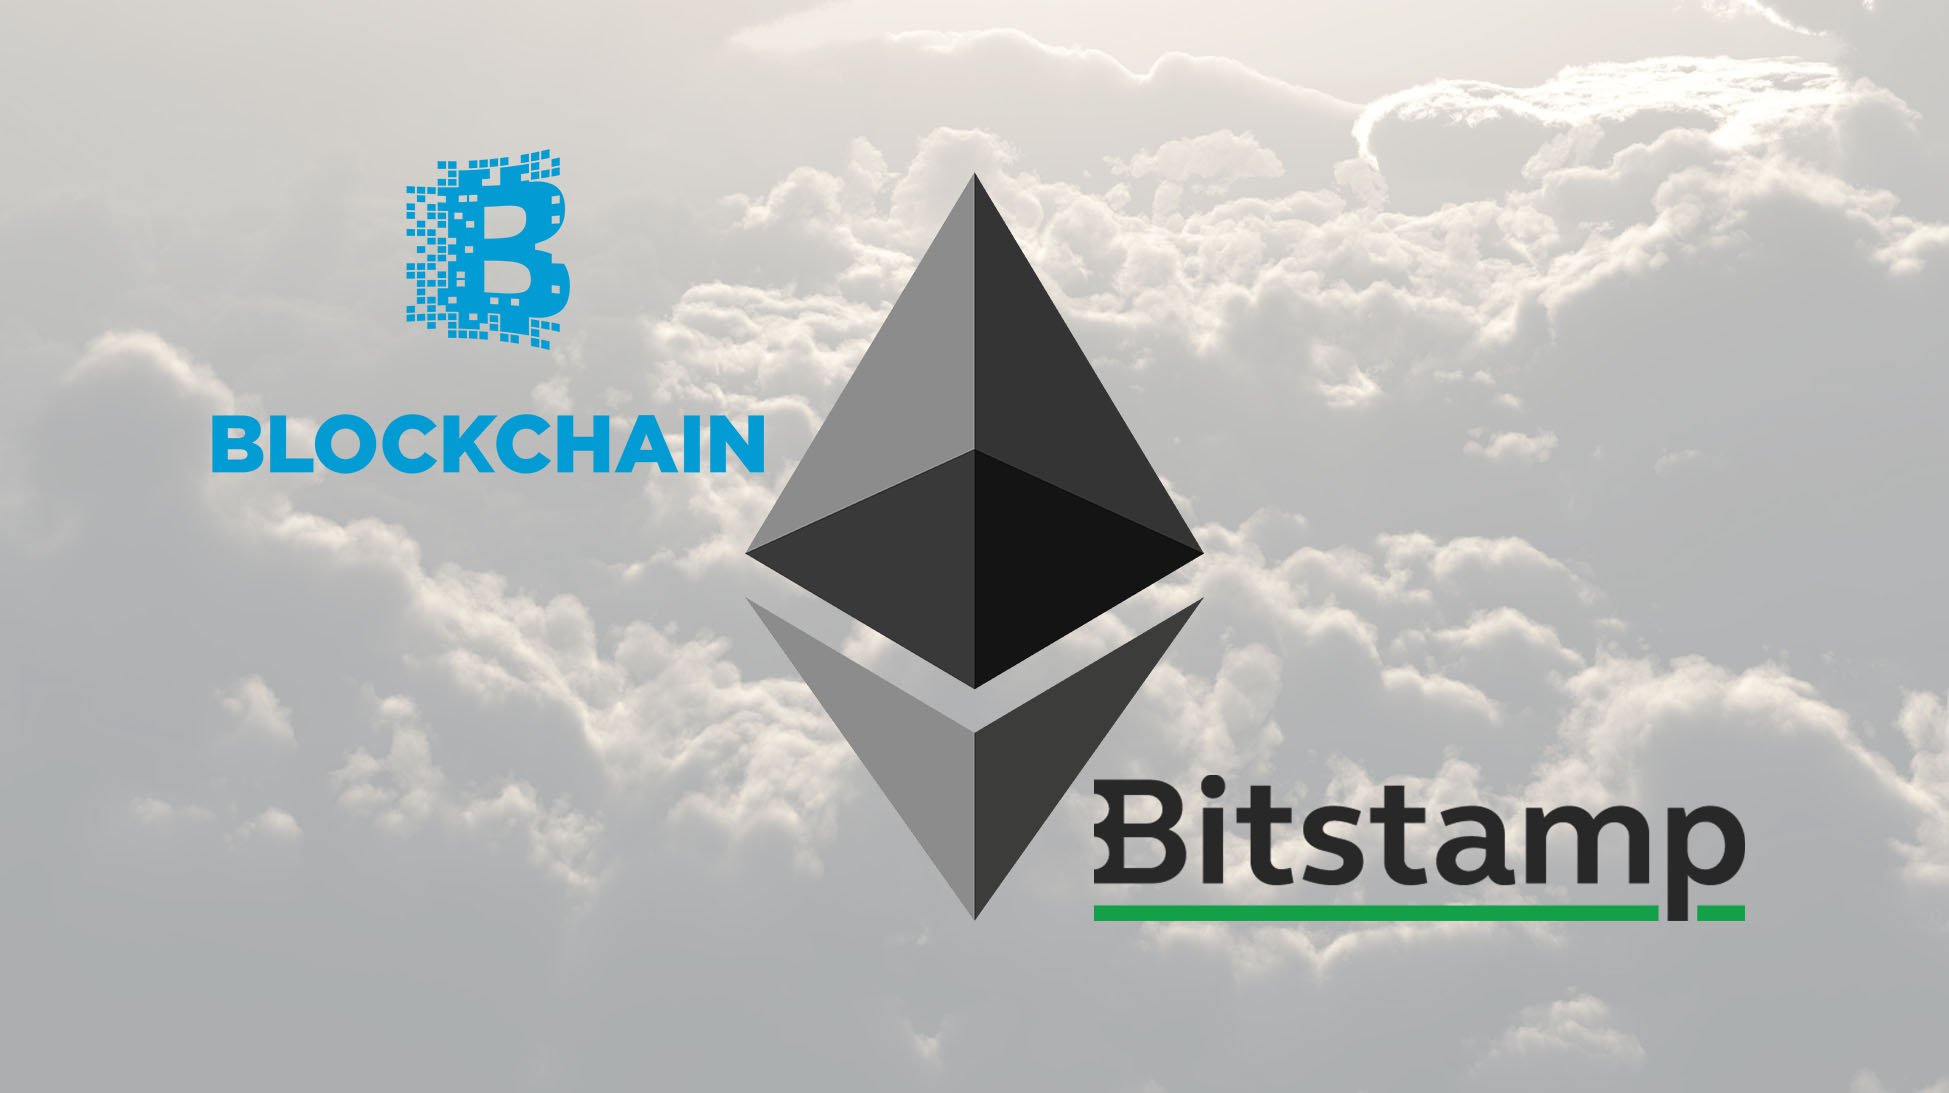 Blockchain and Bitstamp Customers Can Now Use Ether